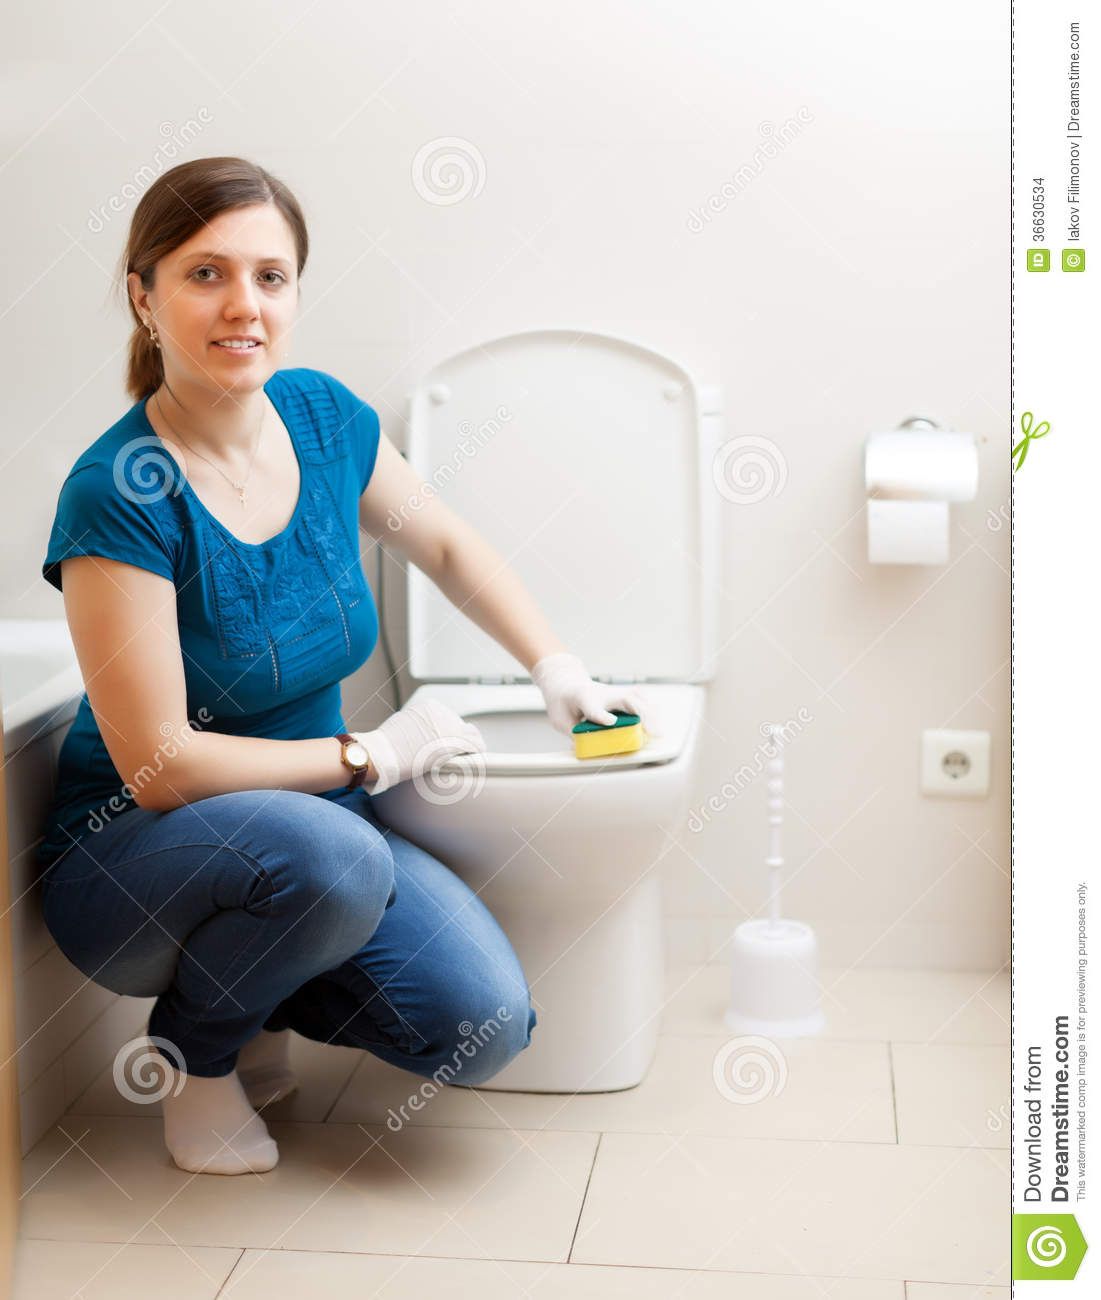 woman cleaning toilet hot girls wallpaper